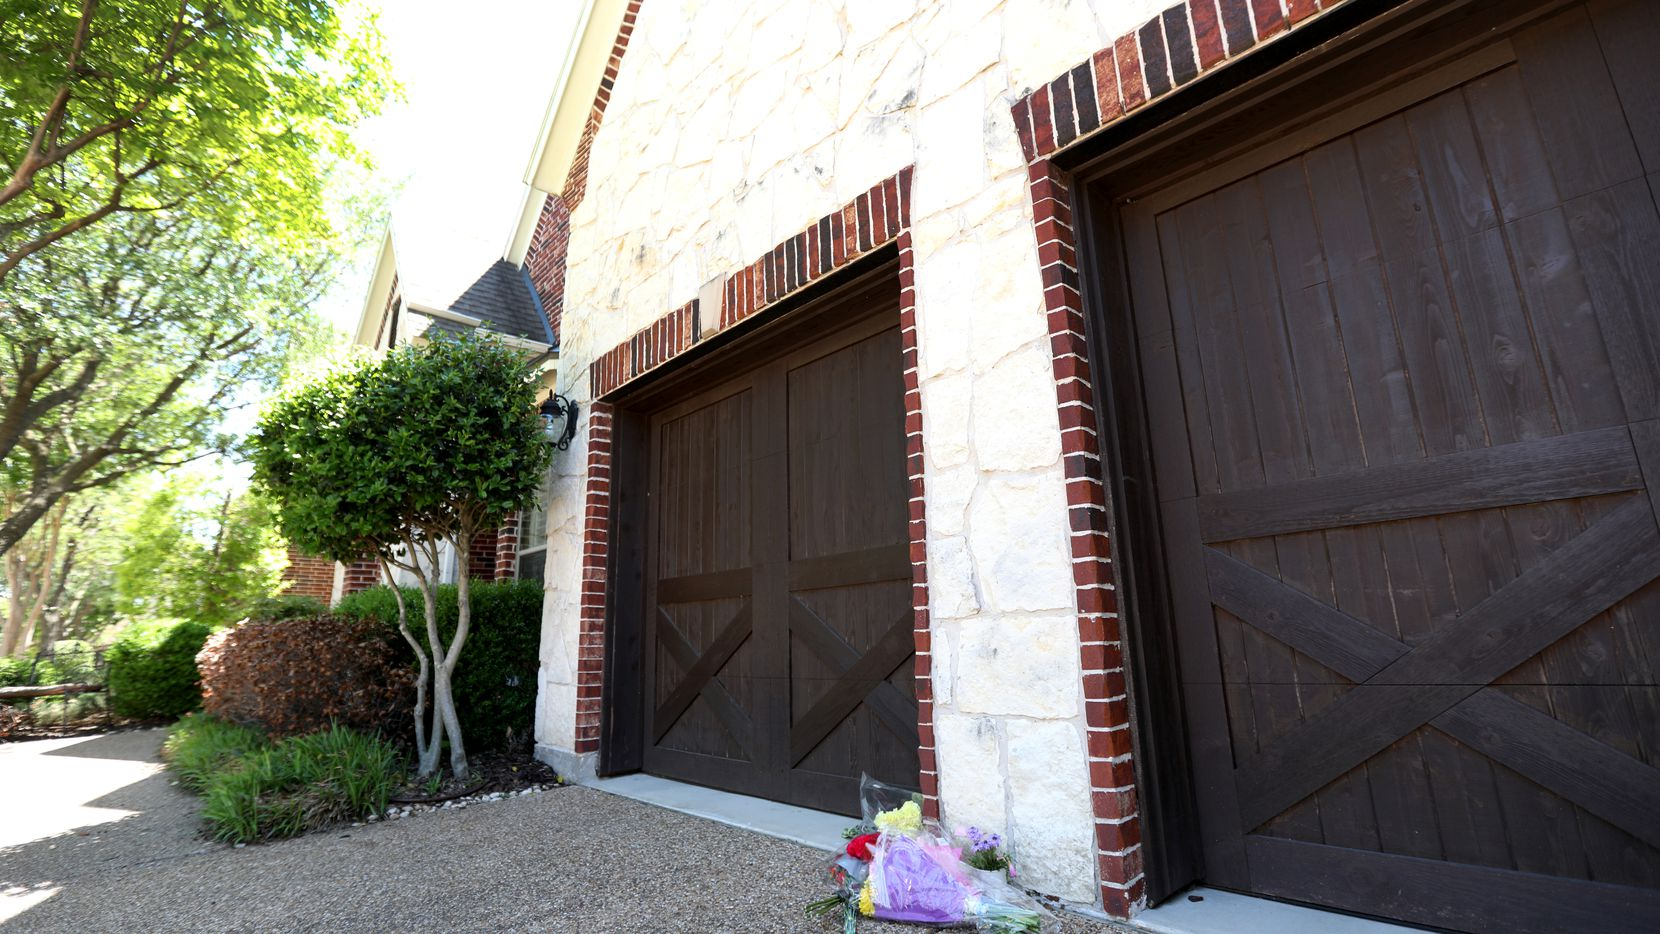 Flowers in front of the garage at 1847 Nueces Drive in Allen, Texas, Sunday, April 25, 2021. The home is where a 20-year-old man is believed to have killed his 51-year-old mother and 17-year-old sister.